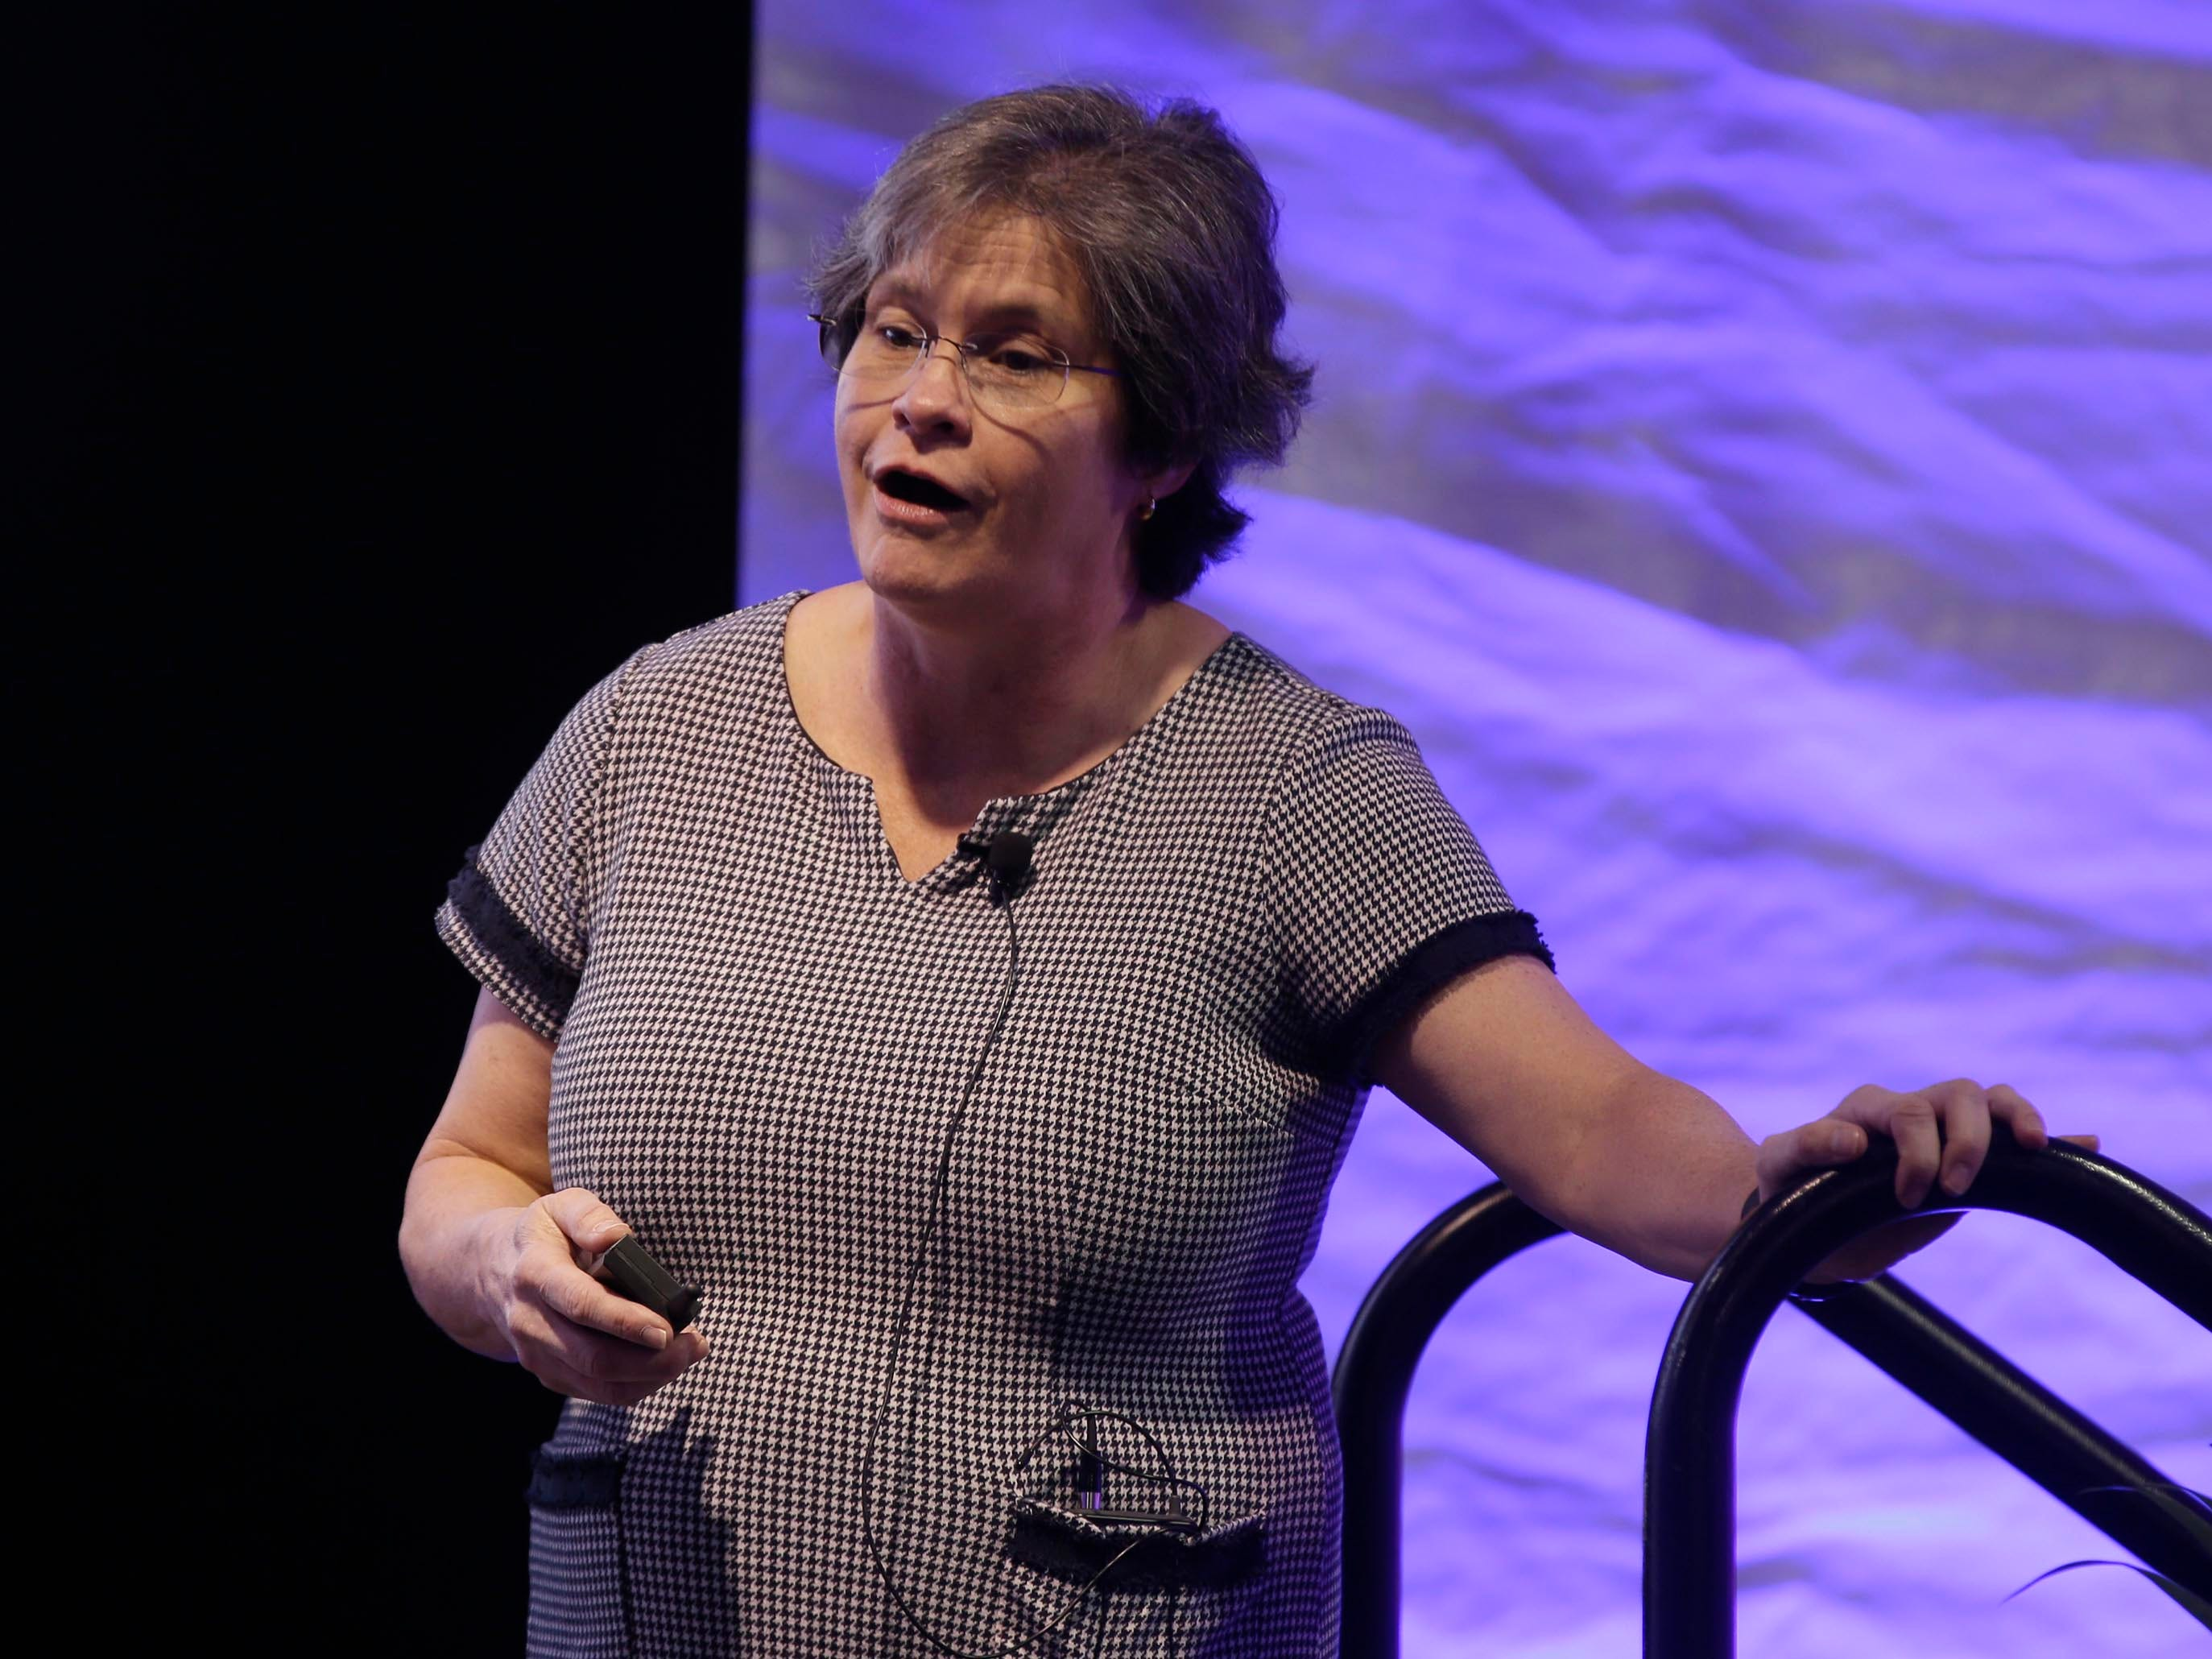 Dr. Grace E. Terrell is CEO of Envision Geonomics gives a presentation called Beyond 23 and Me during Kohler Well-Being, Saturday, May 4, 2019, in Kohler, Wis.